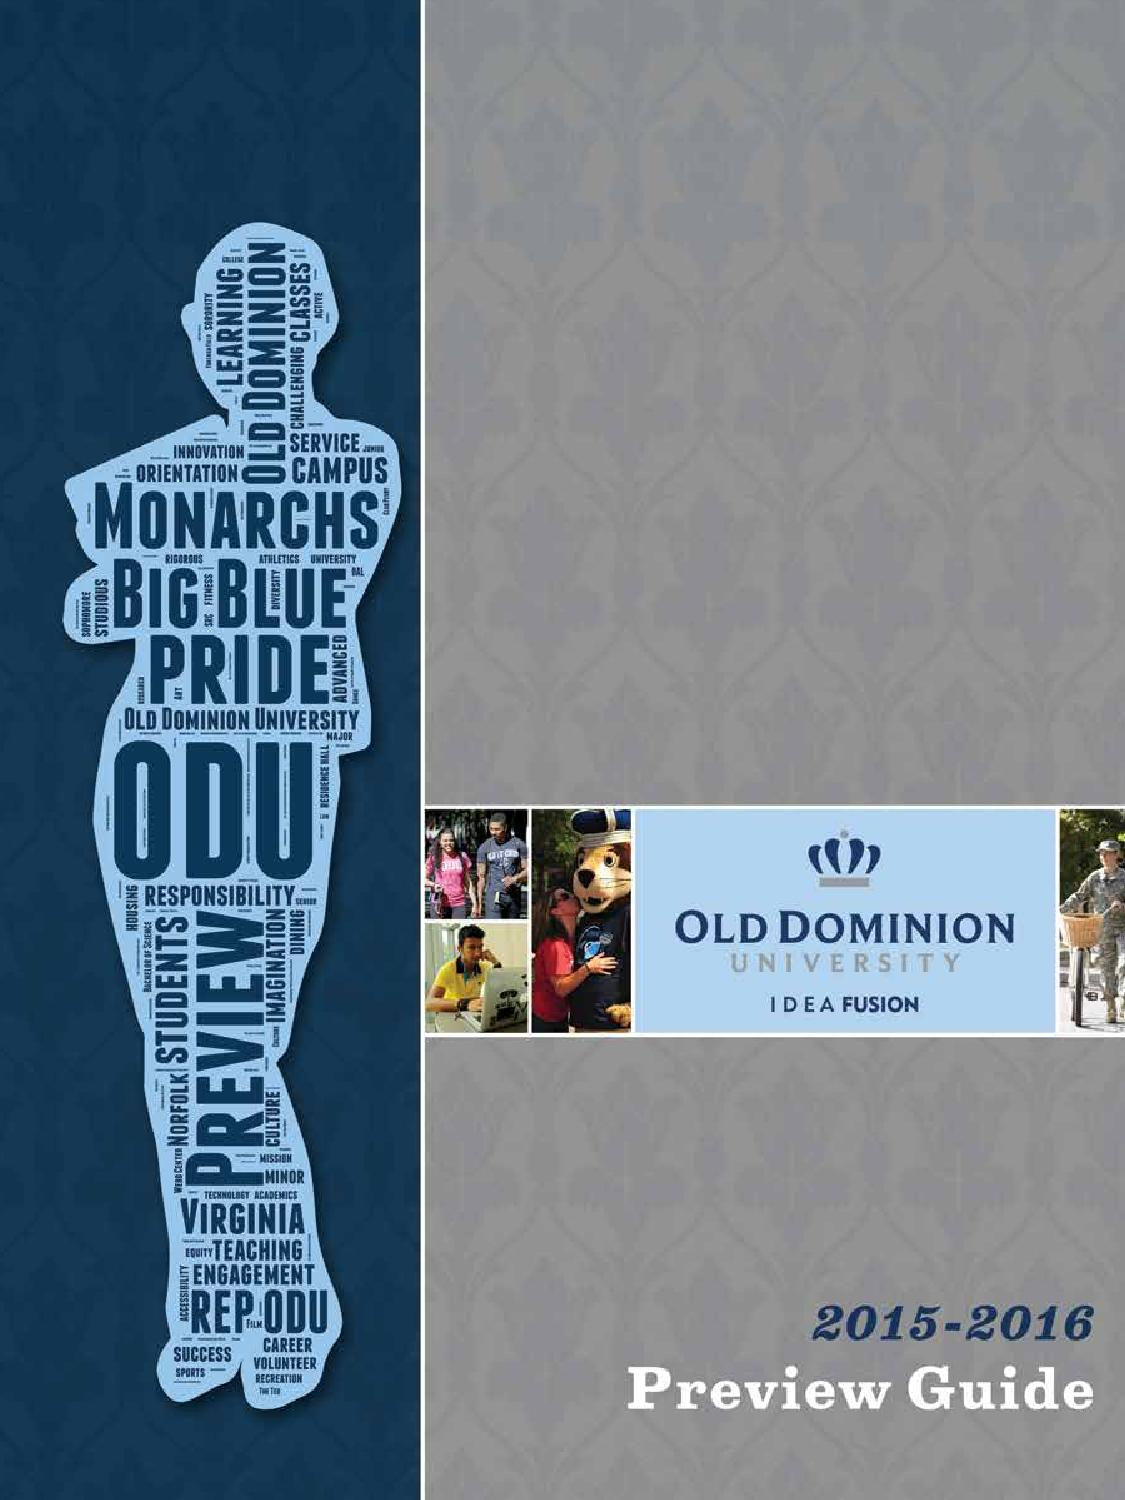 2015 Preview Guide by Old Dominion University issuu